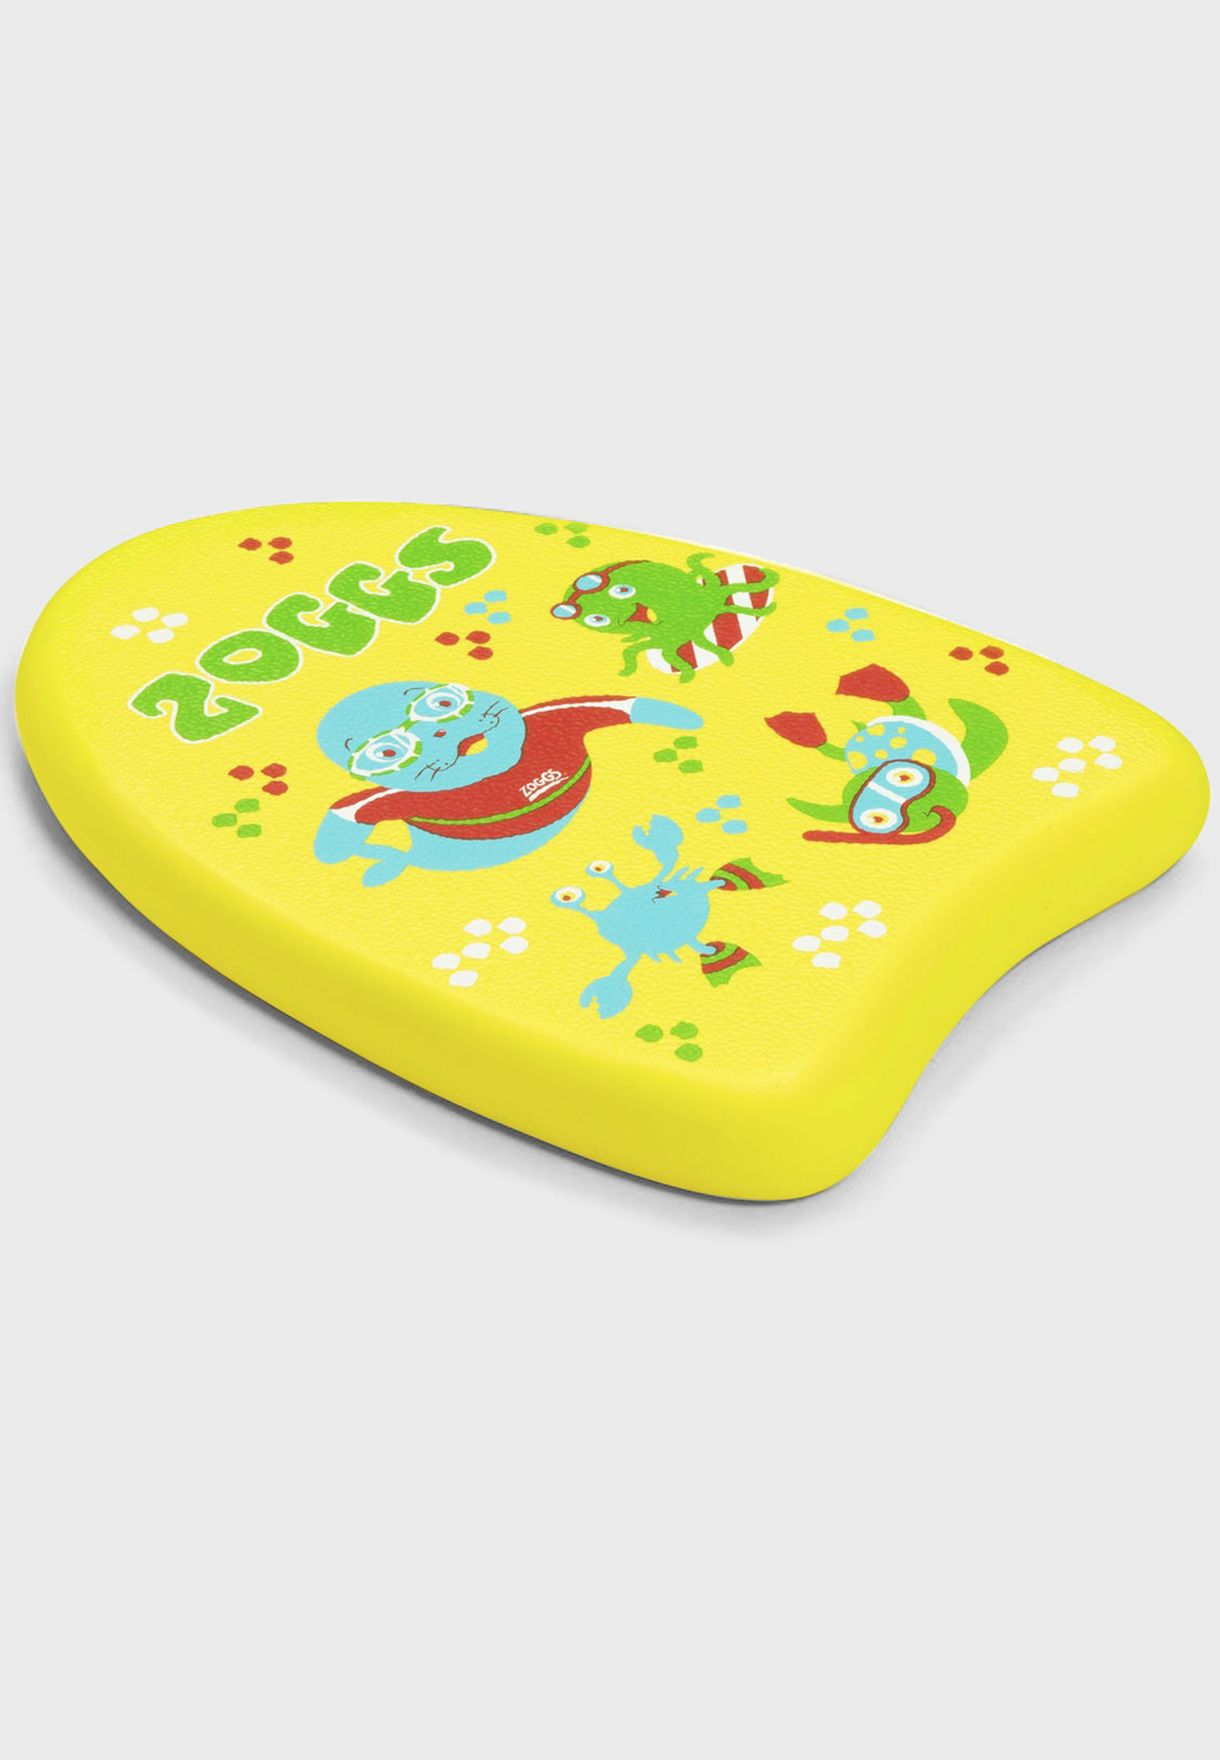 Kids Mini Kickboard 3-12 Years